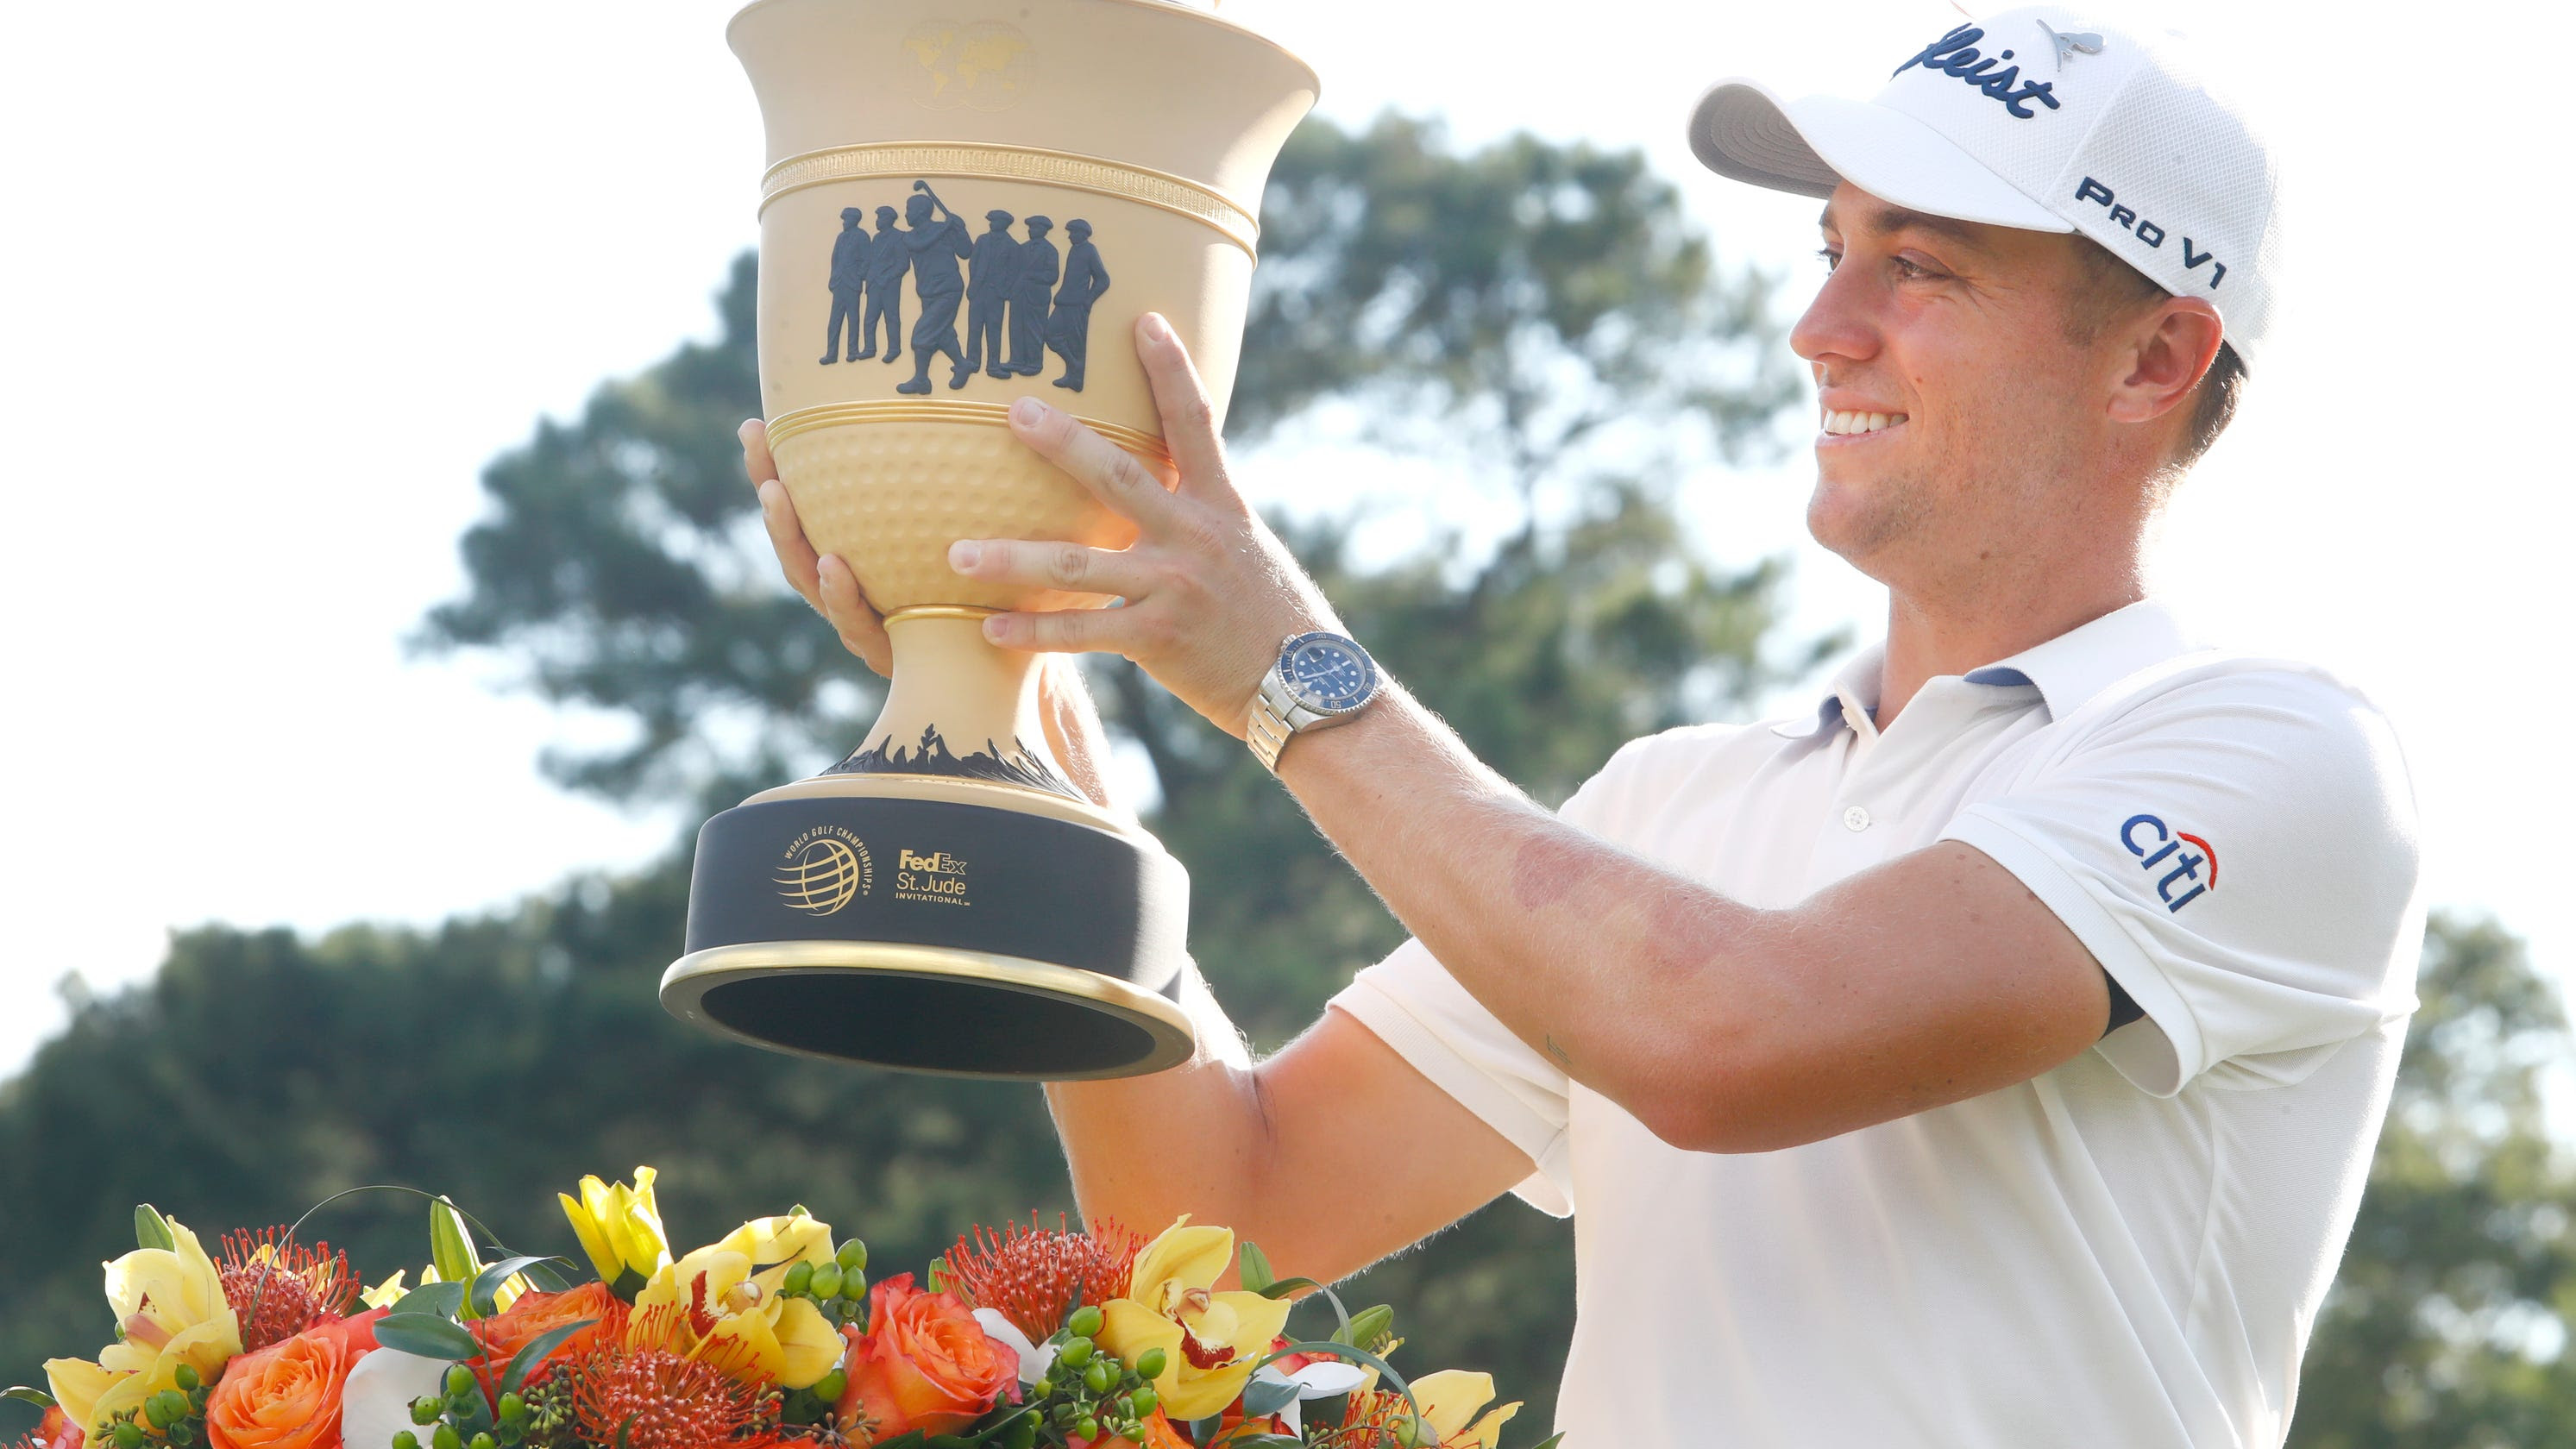 Flipboard: Justin Thomas won the 2020 WGC-FedEx St. Jude Invitational in thrilling fashion. Let's never do it again.